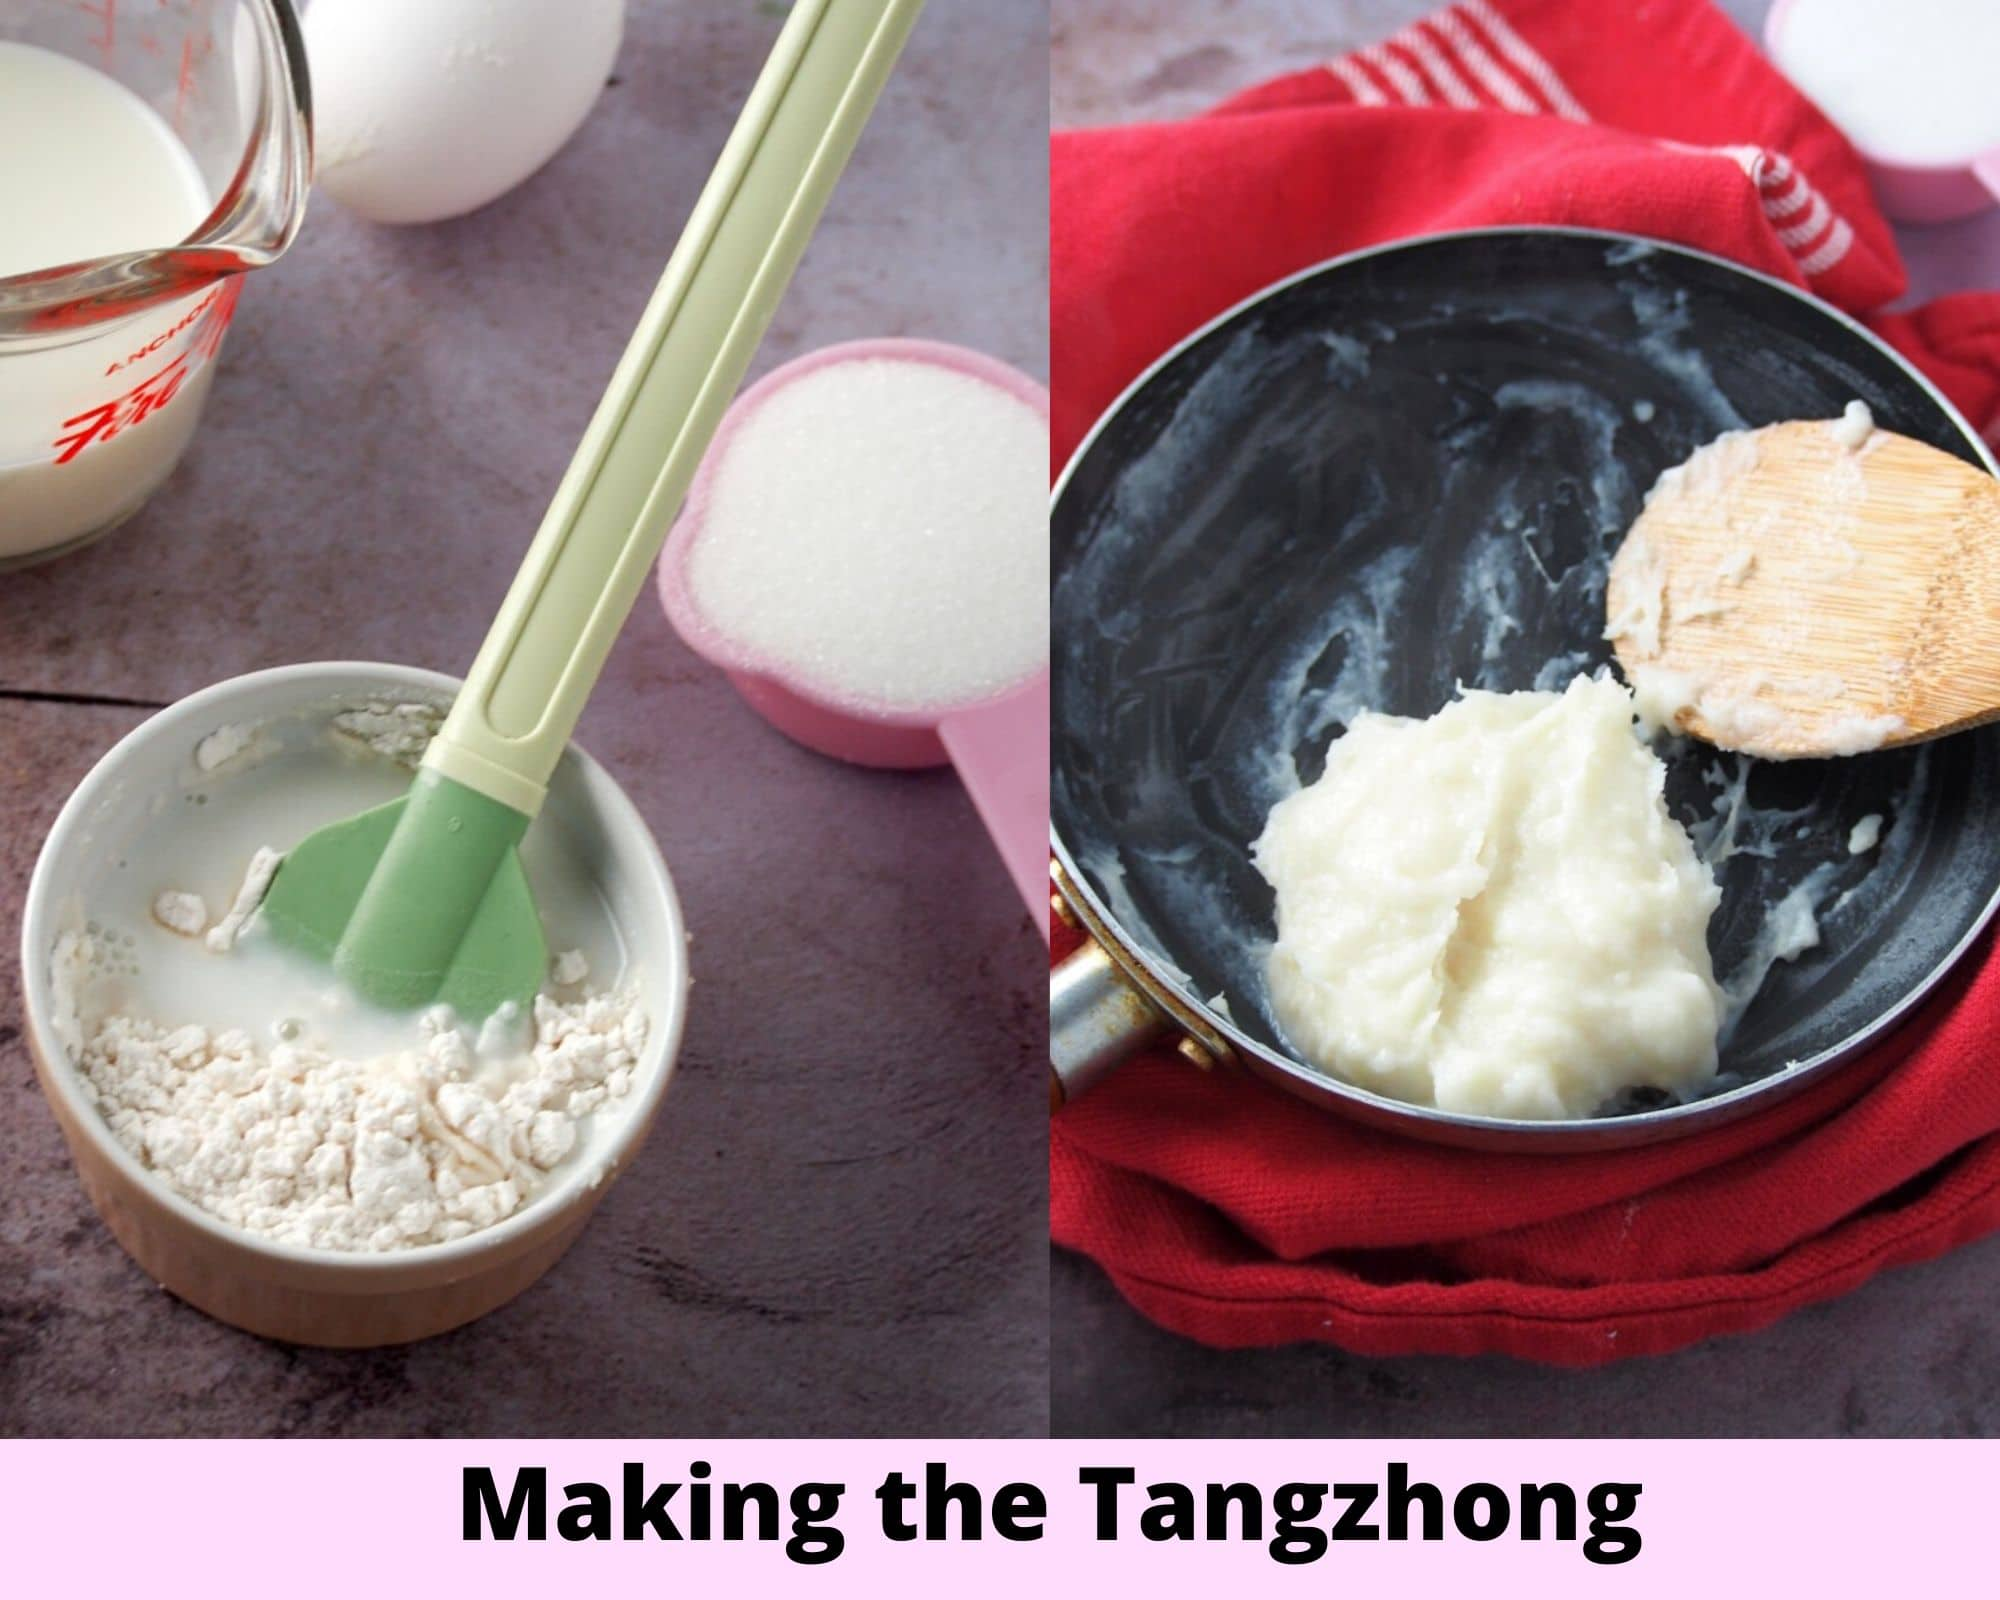 A collage showing how to make tangzhong.